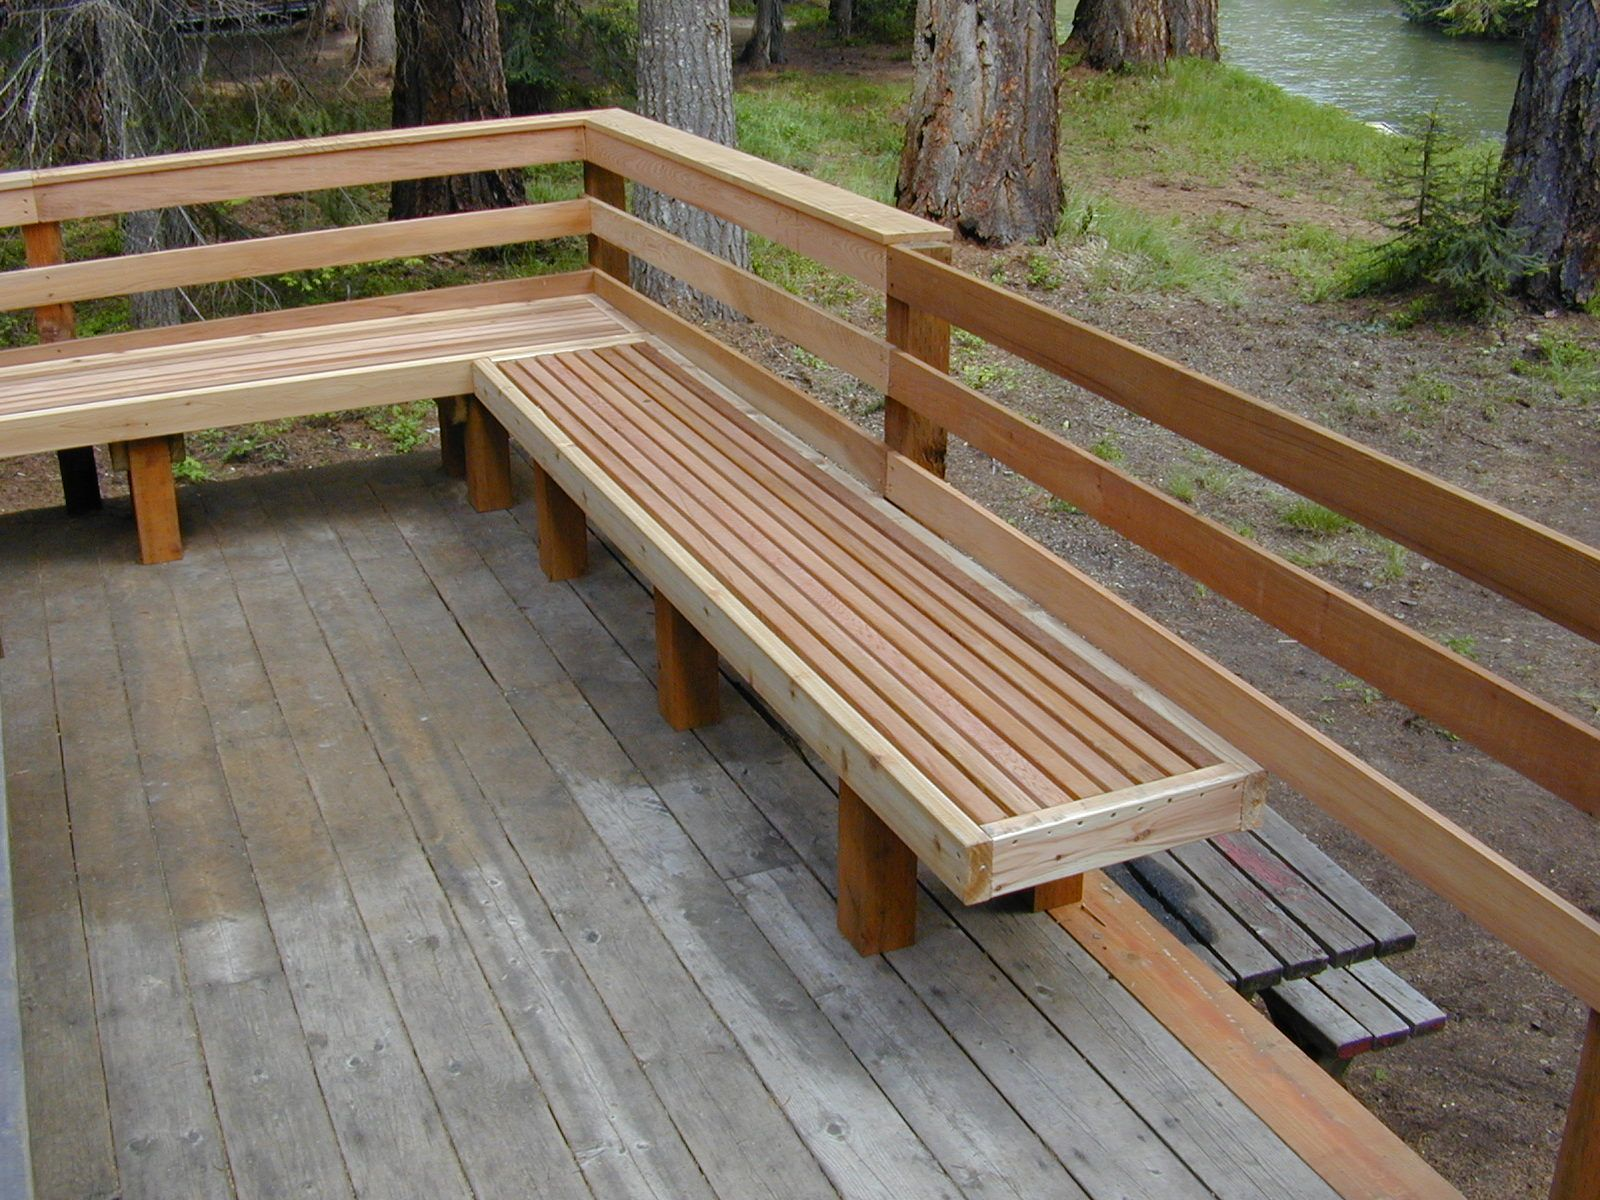 The Design Of A Custom Deck Railing Is A Great Place To Show Style In Your Custom Deck Rail Design Over The Last Deck Railing Design Deck Bench Deck Railings